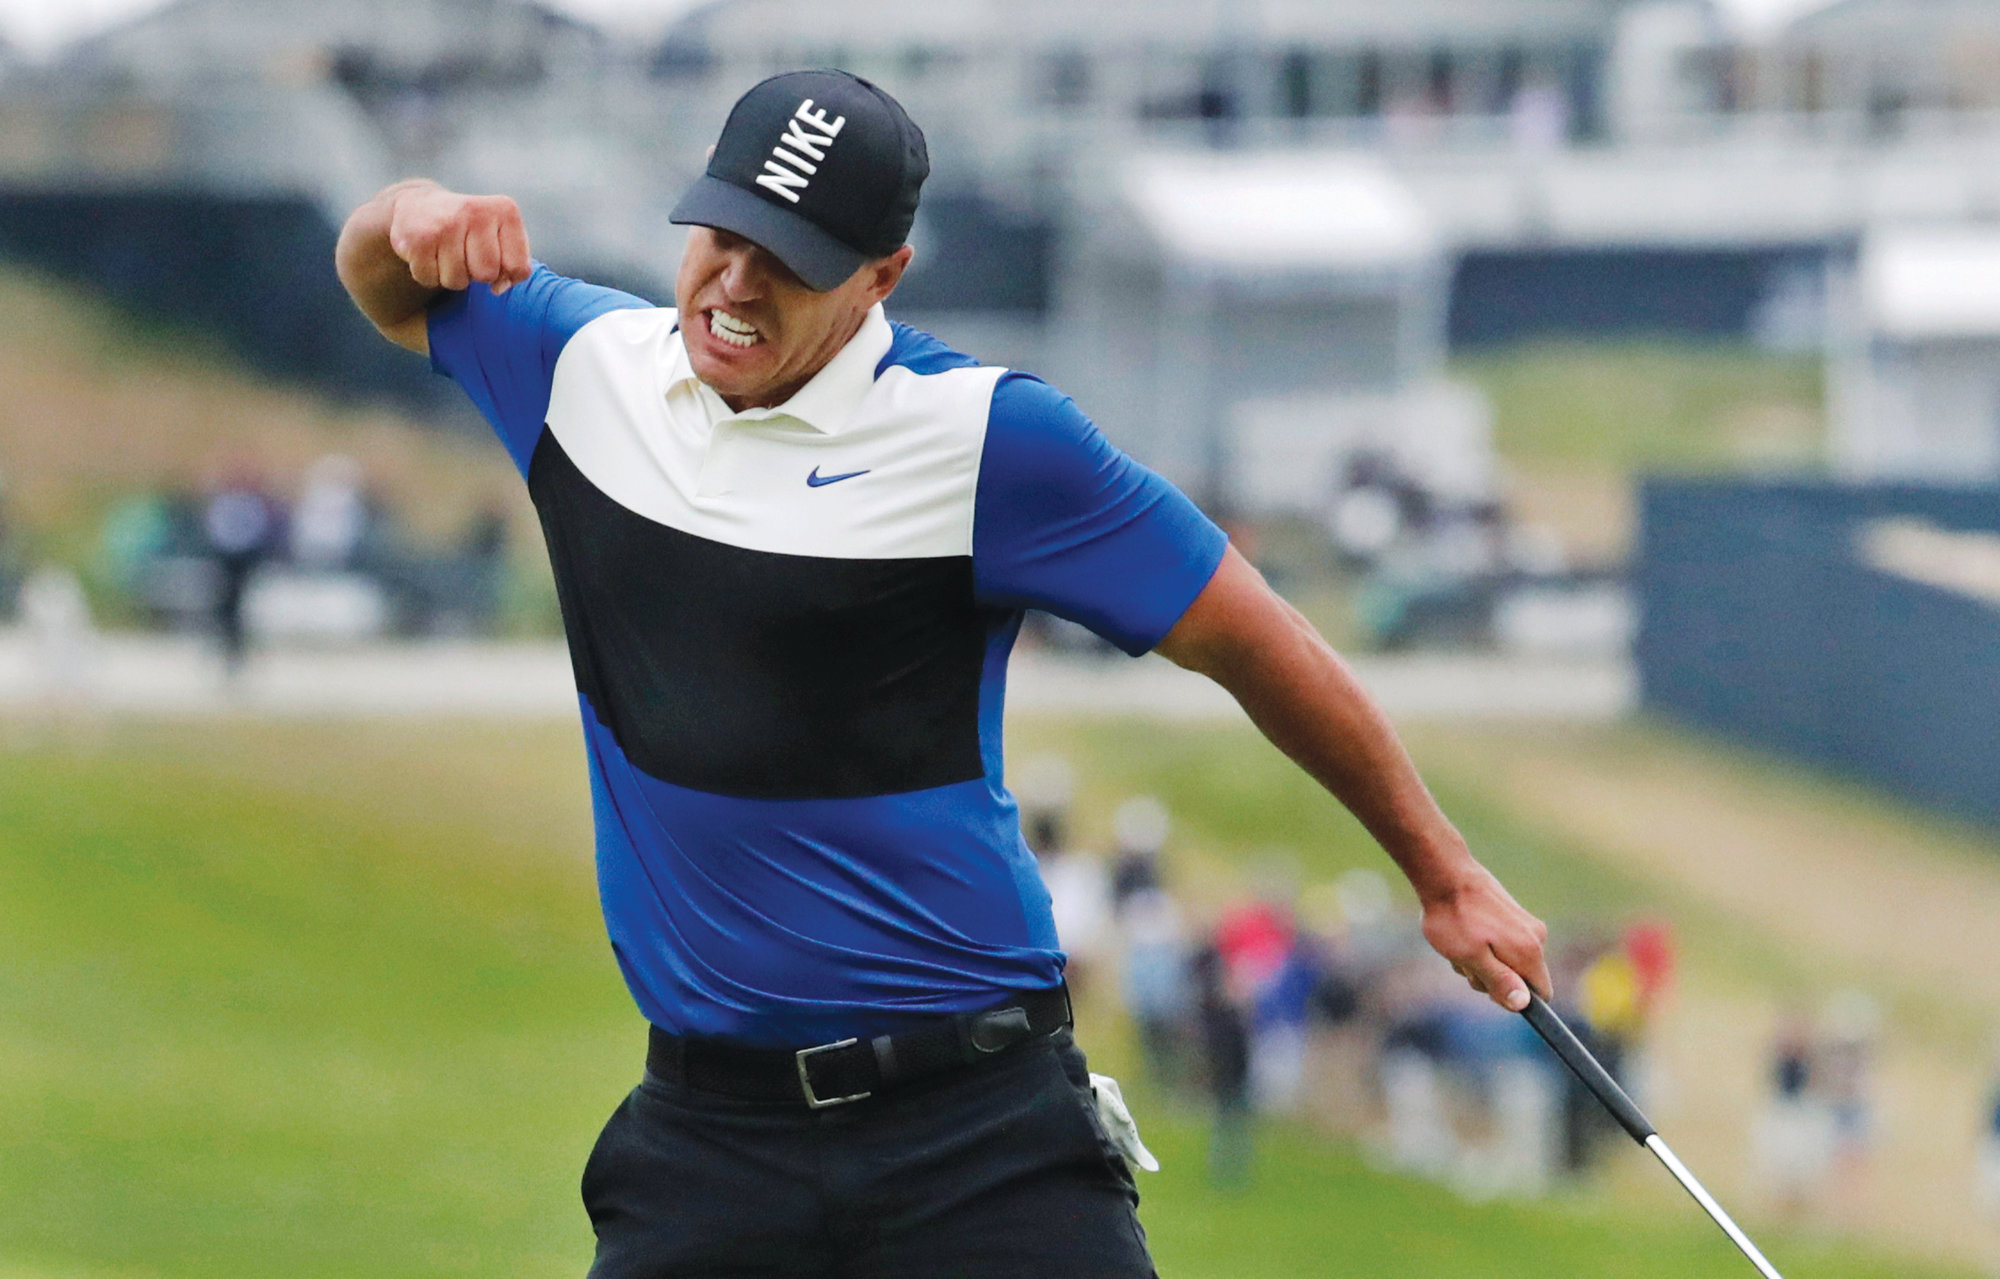 Brooks Koepka sets new major target after fourth title